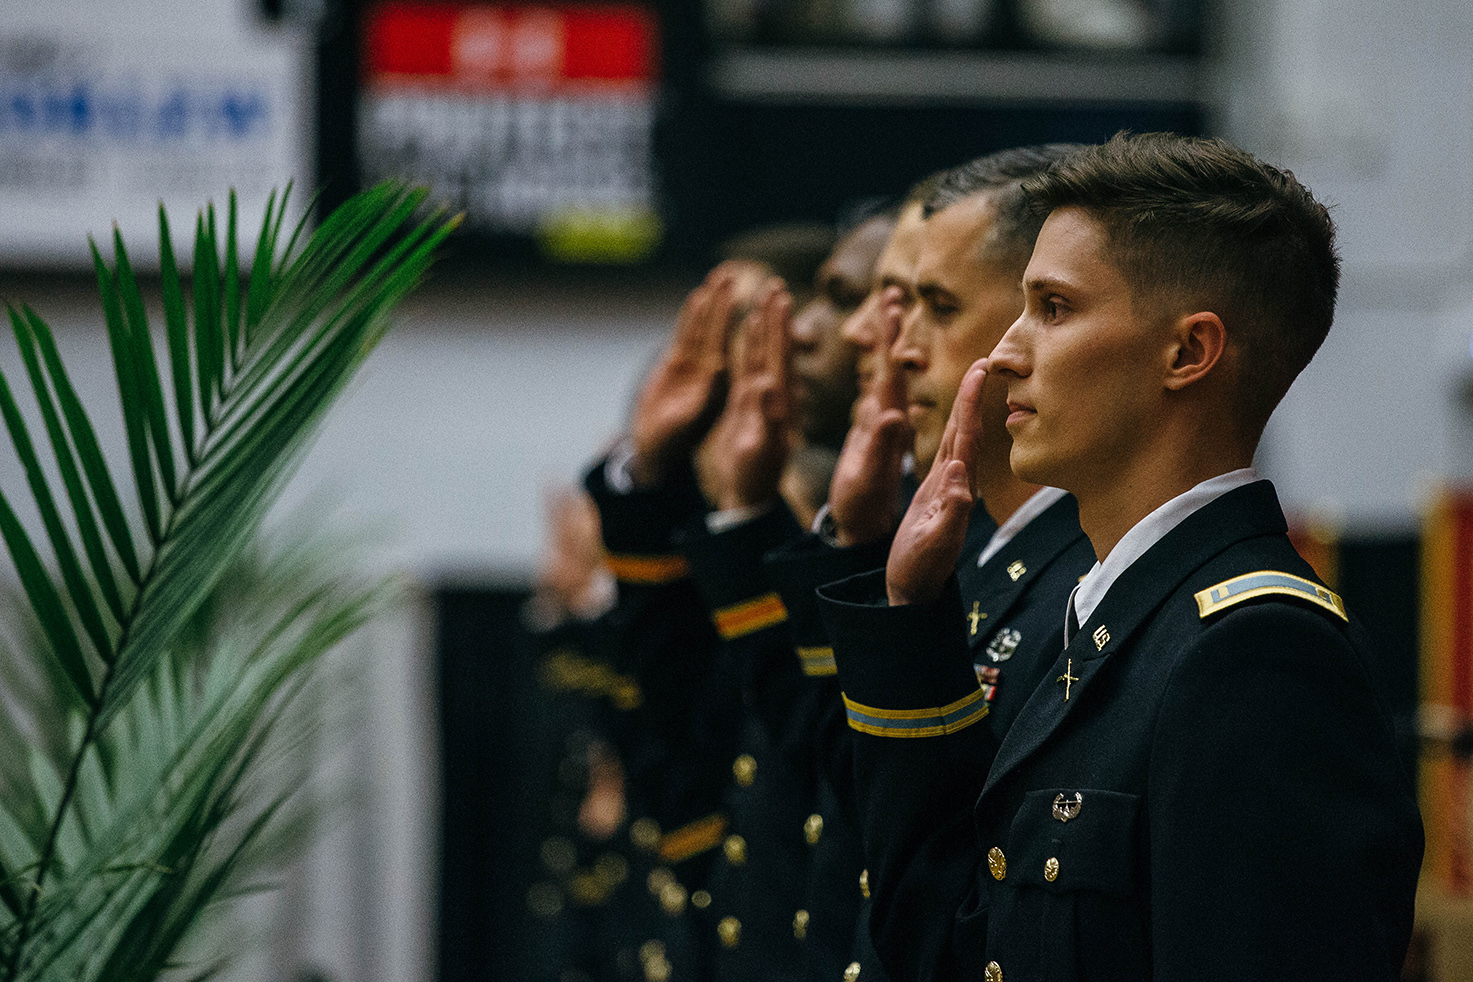 ROTC students being comissioned into the U.S. Army.